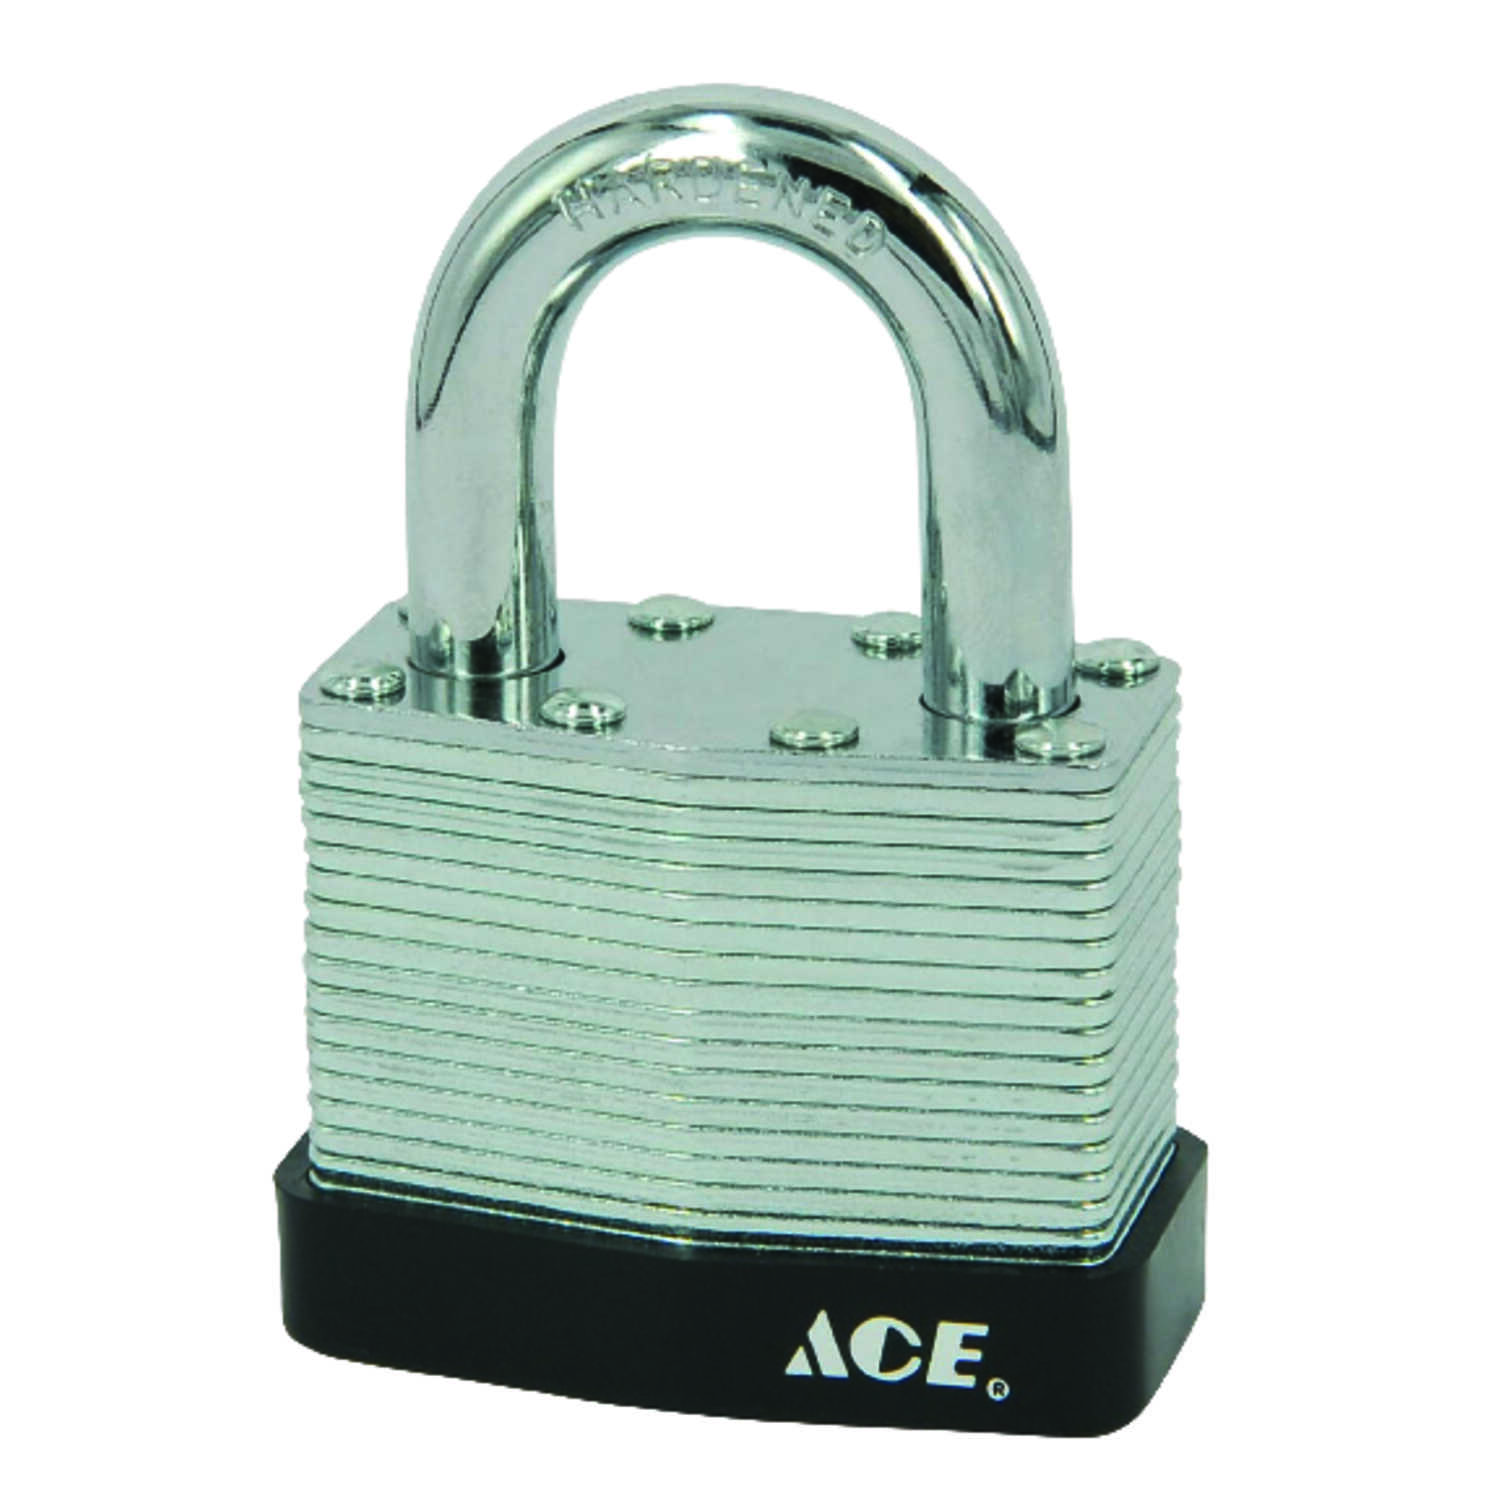 Ace  1-5/16 in. H x 1-9/16 in. W x 7/8 in. L Steel  Double Locking  Padlock  1 pk Keyed Alike